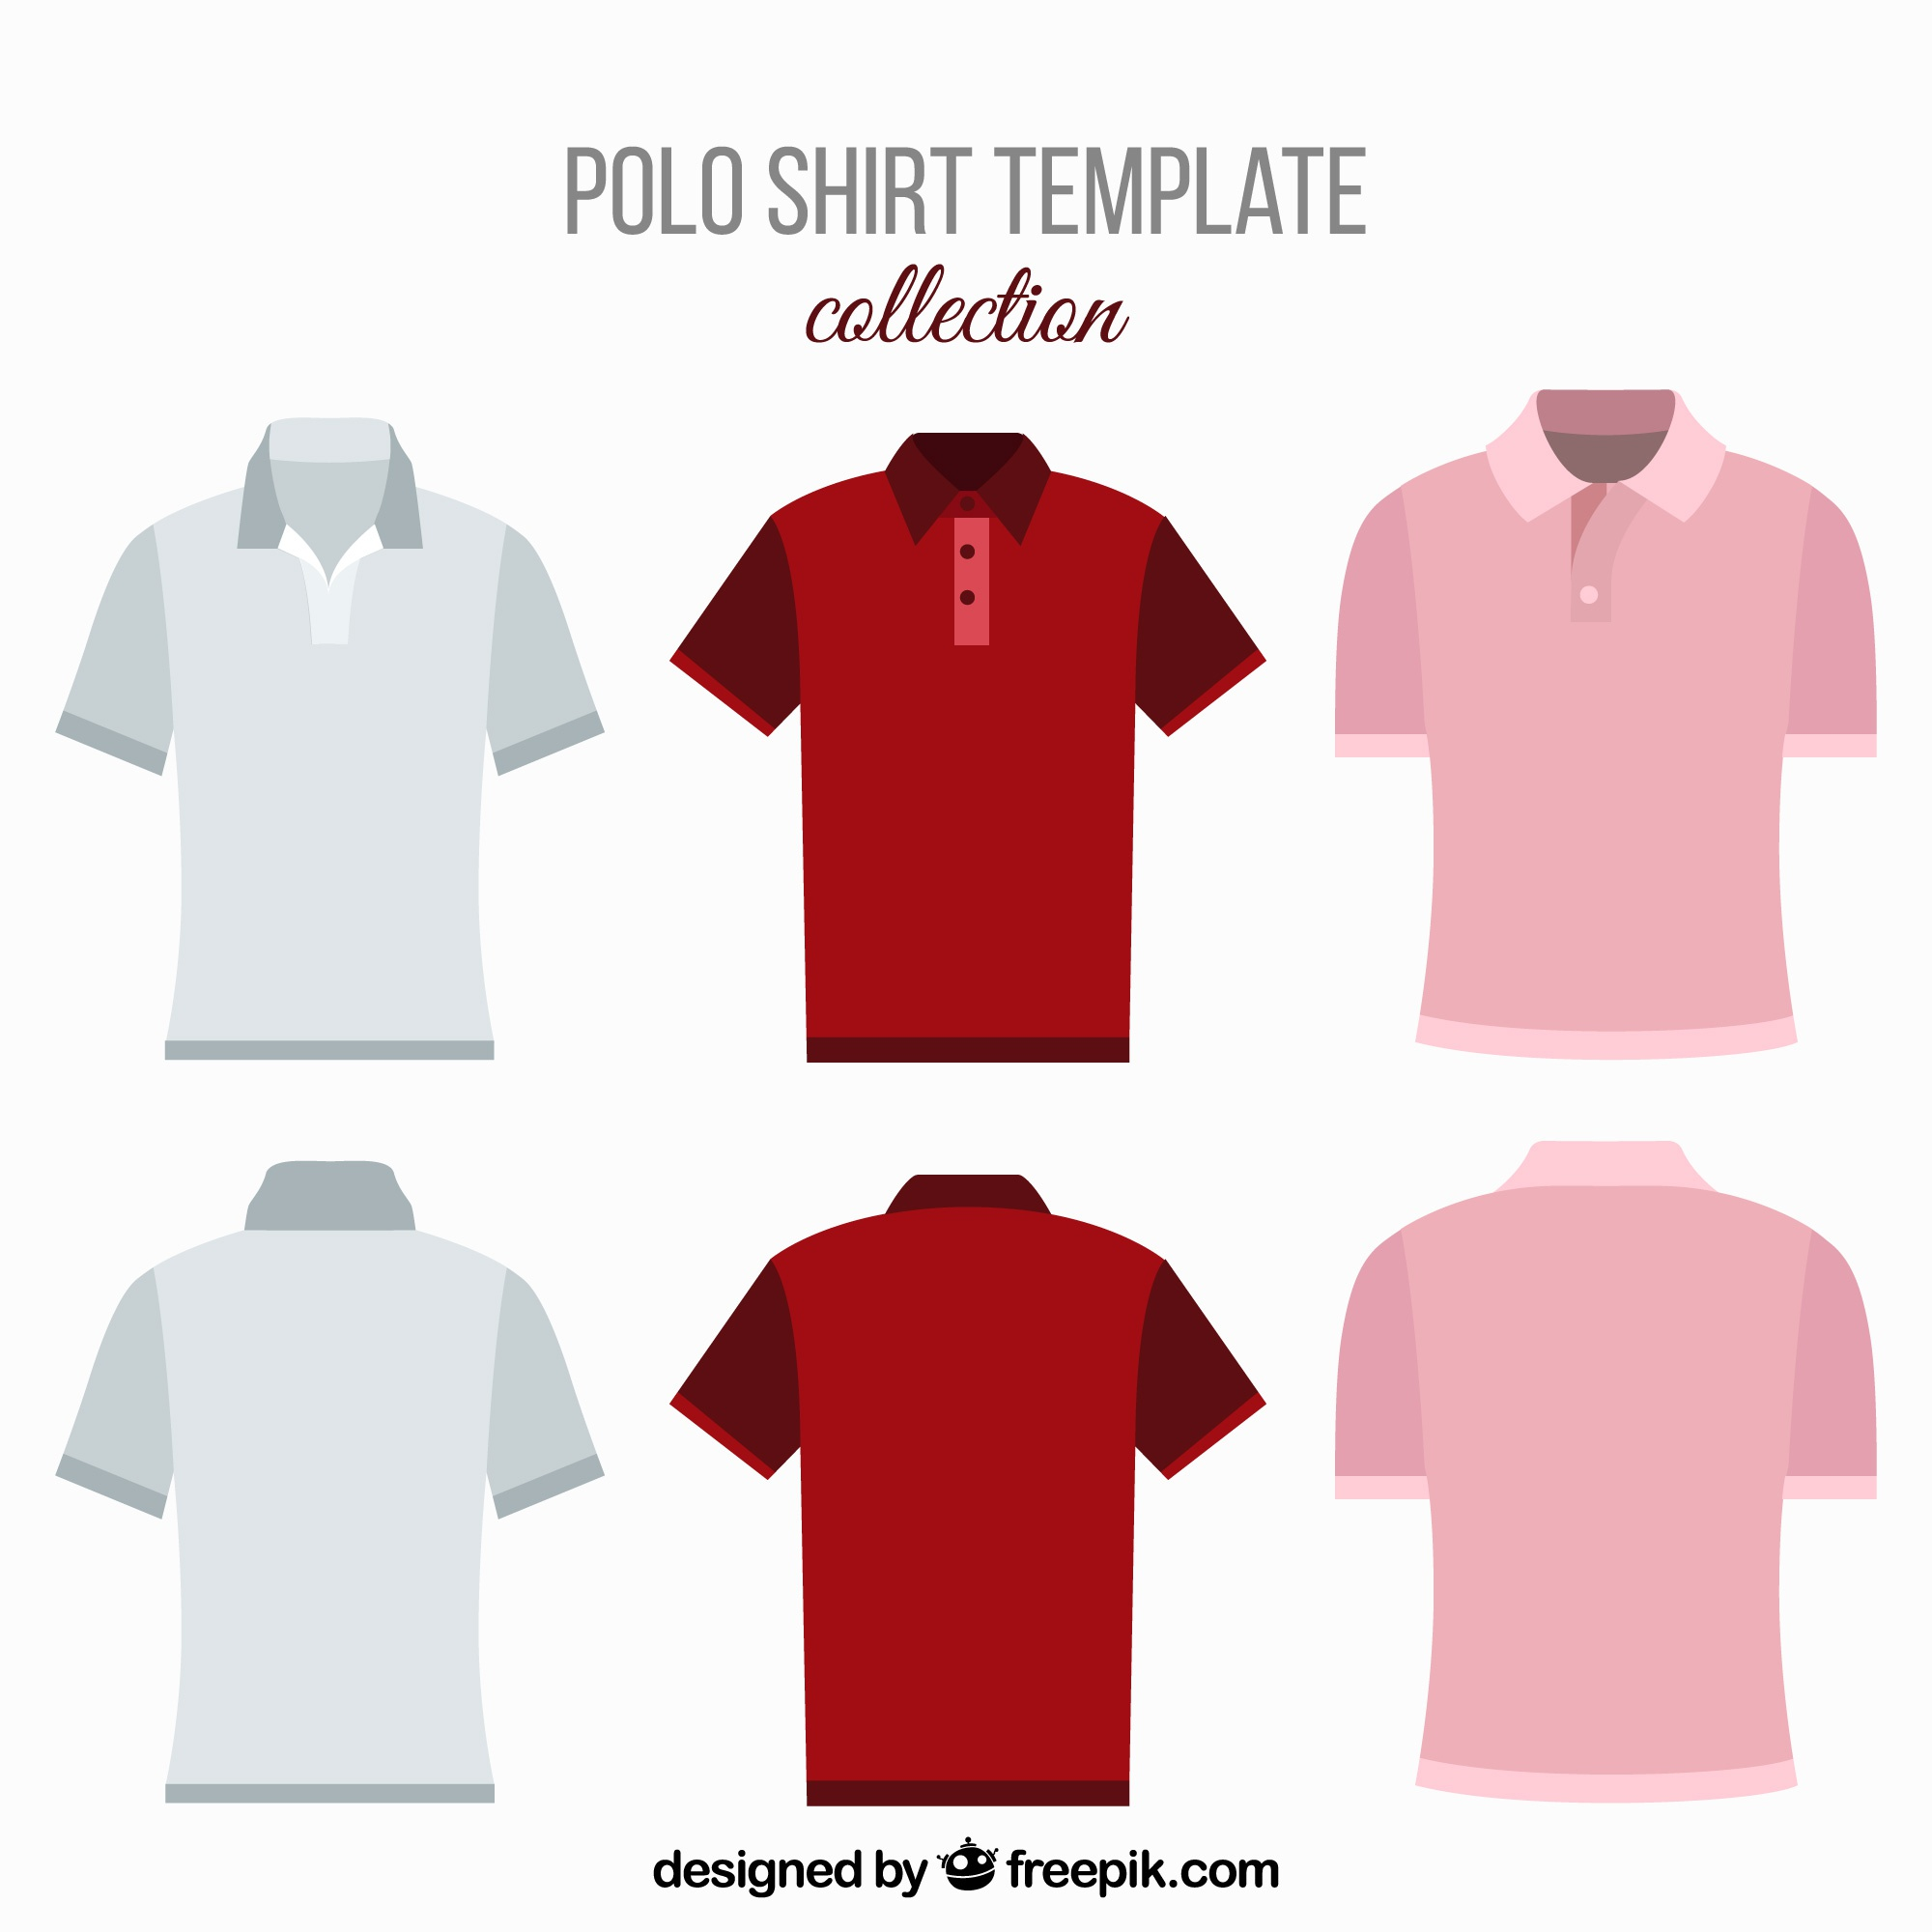 Various polo shirts for men